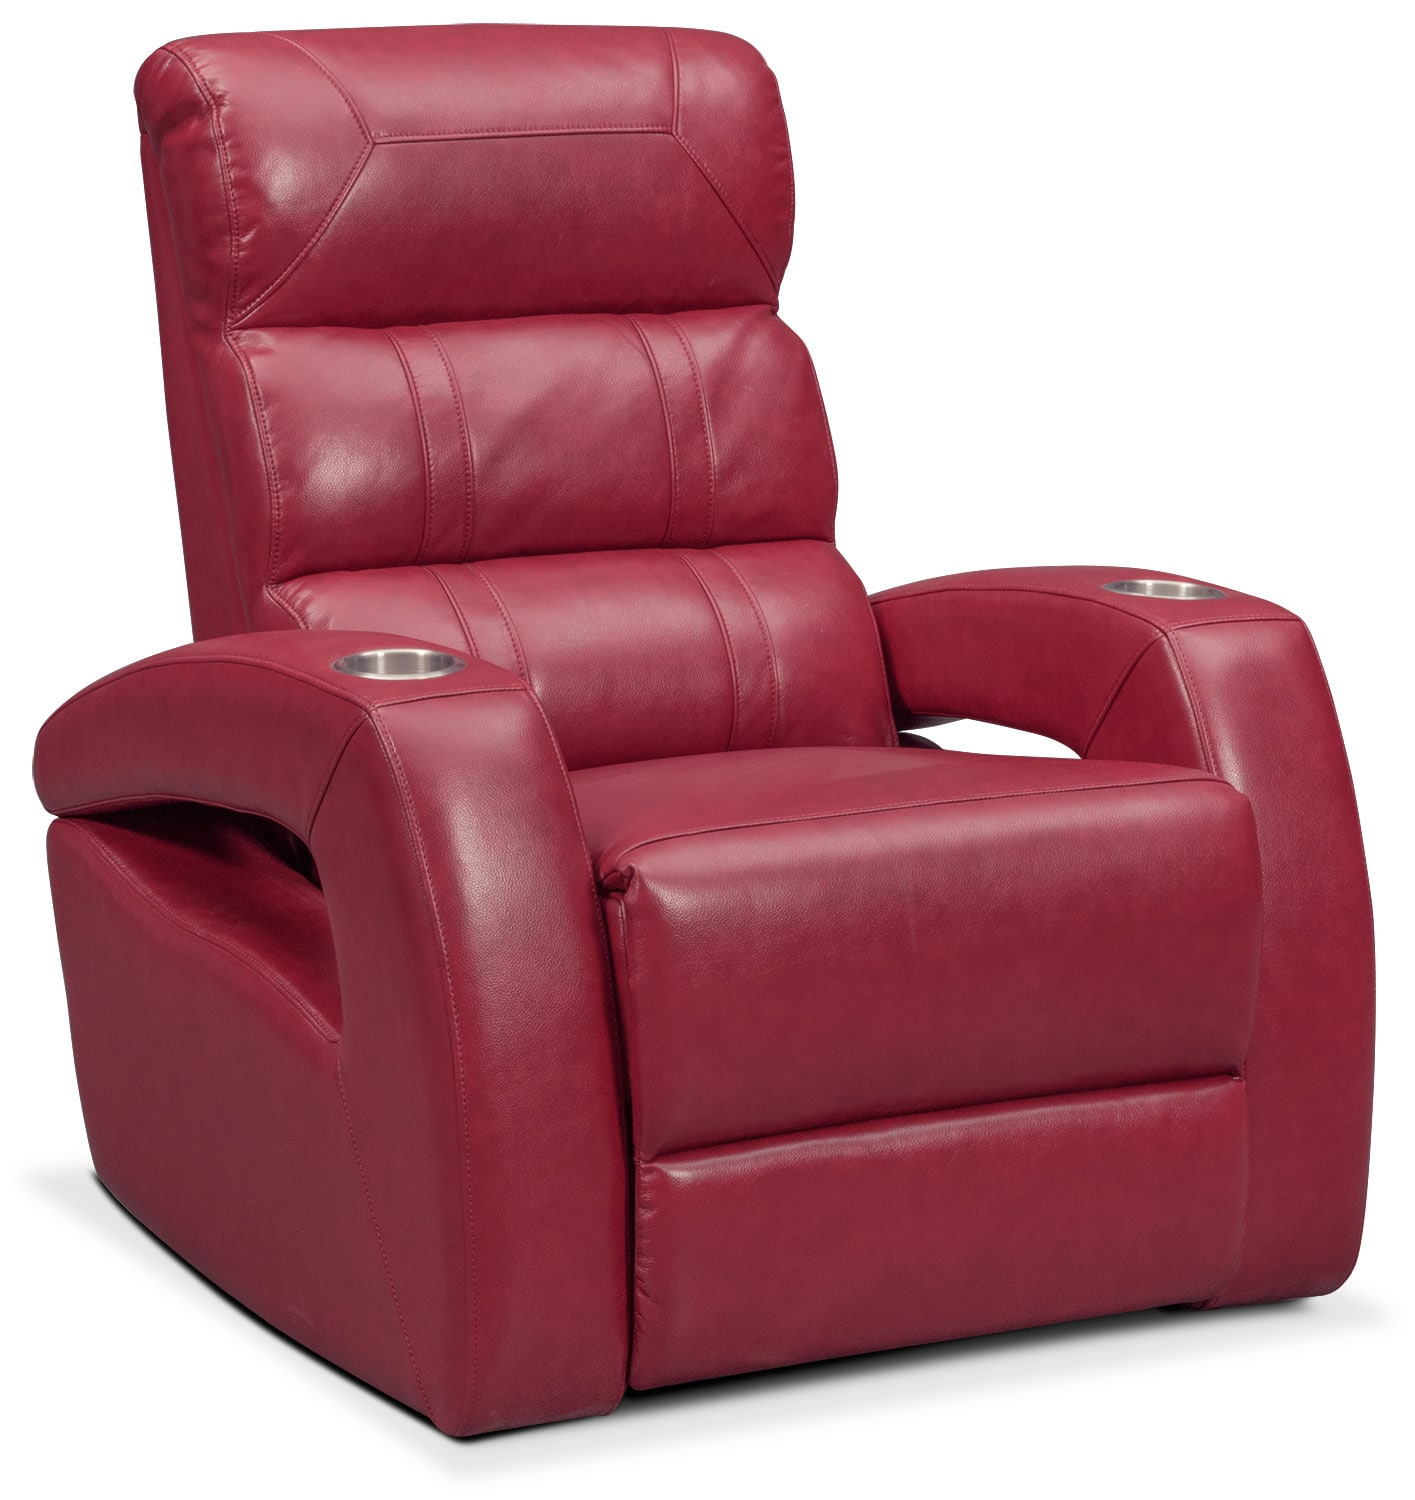 Bravo Power Recliner - Red